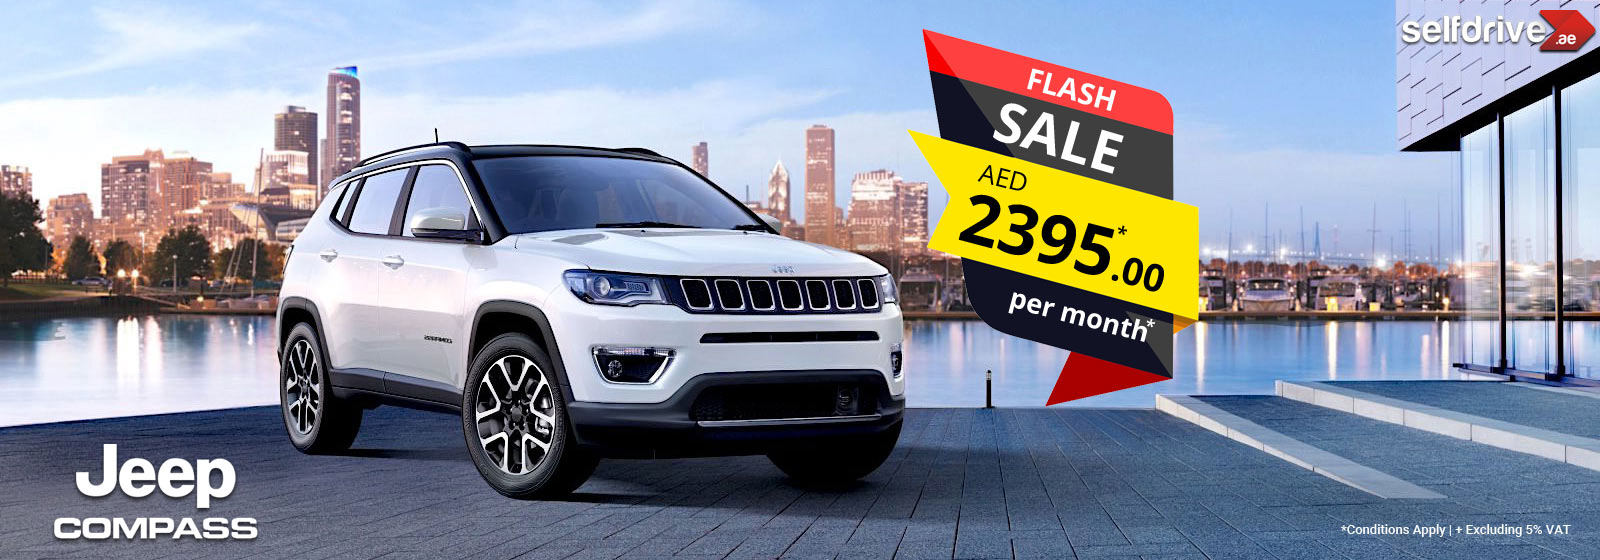 selfdrive.ae:jeep-compass